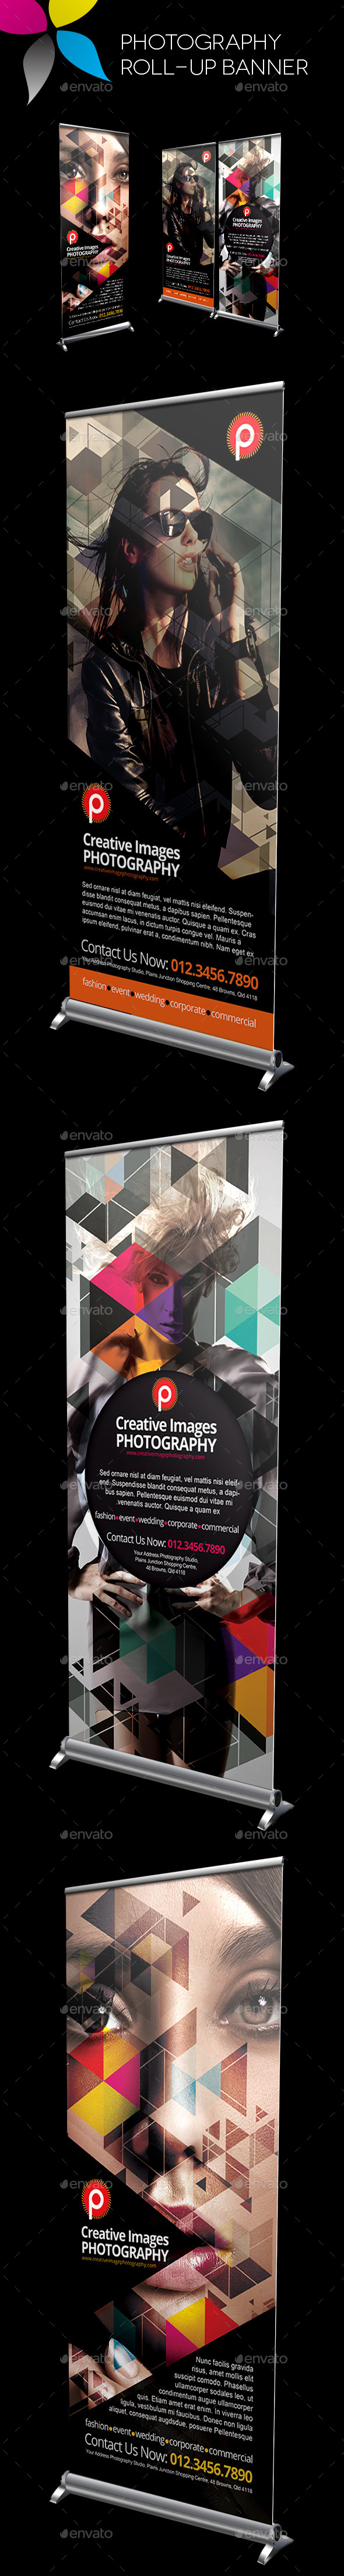 Photography Roll-Up Banner   Rollup banner and Banner template